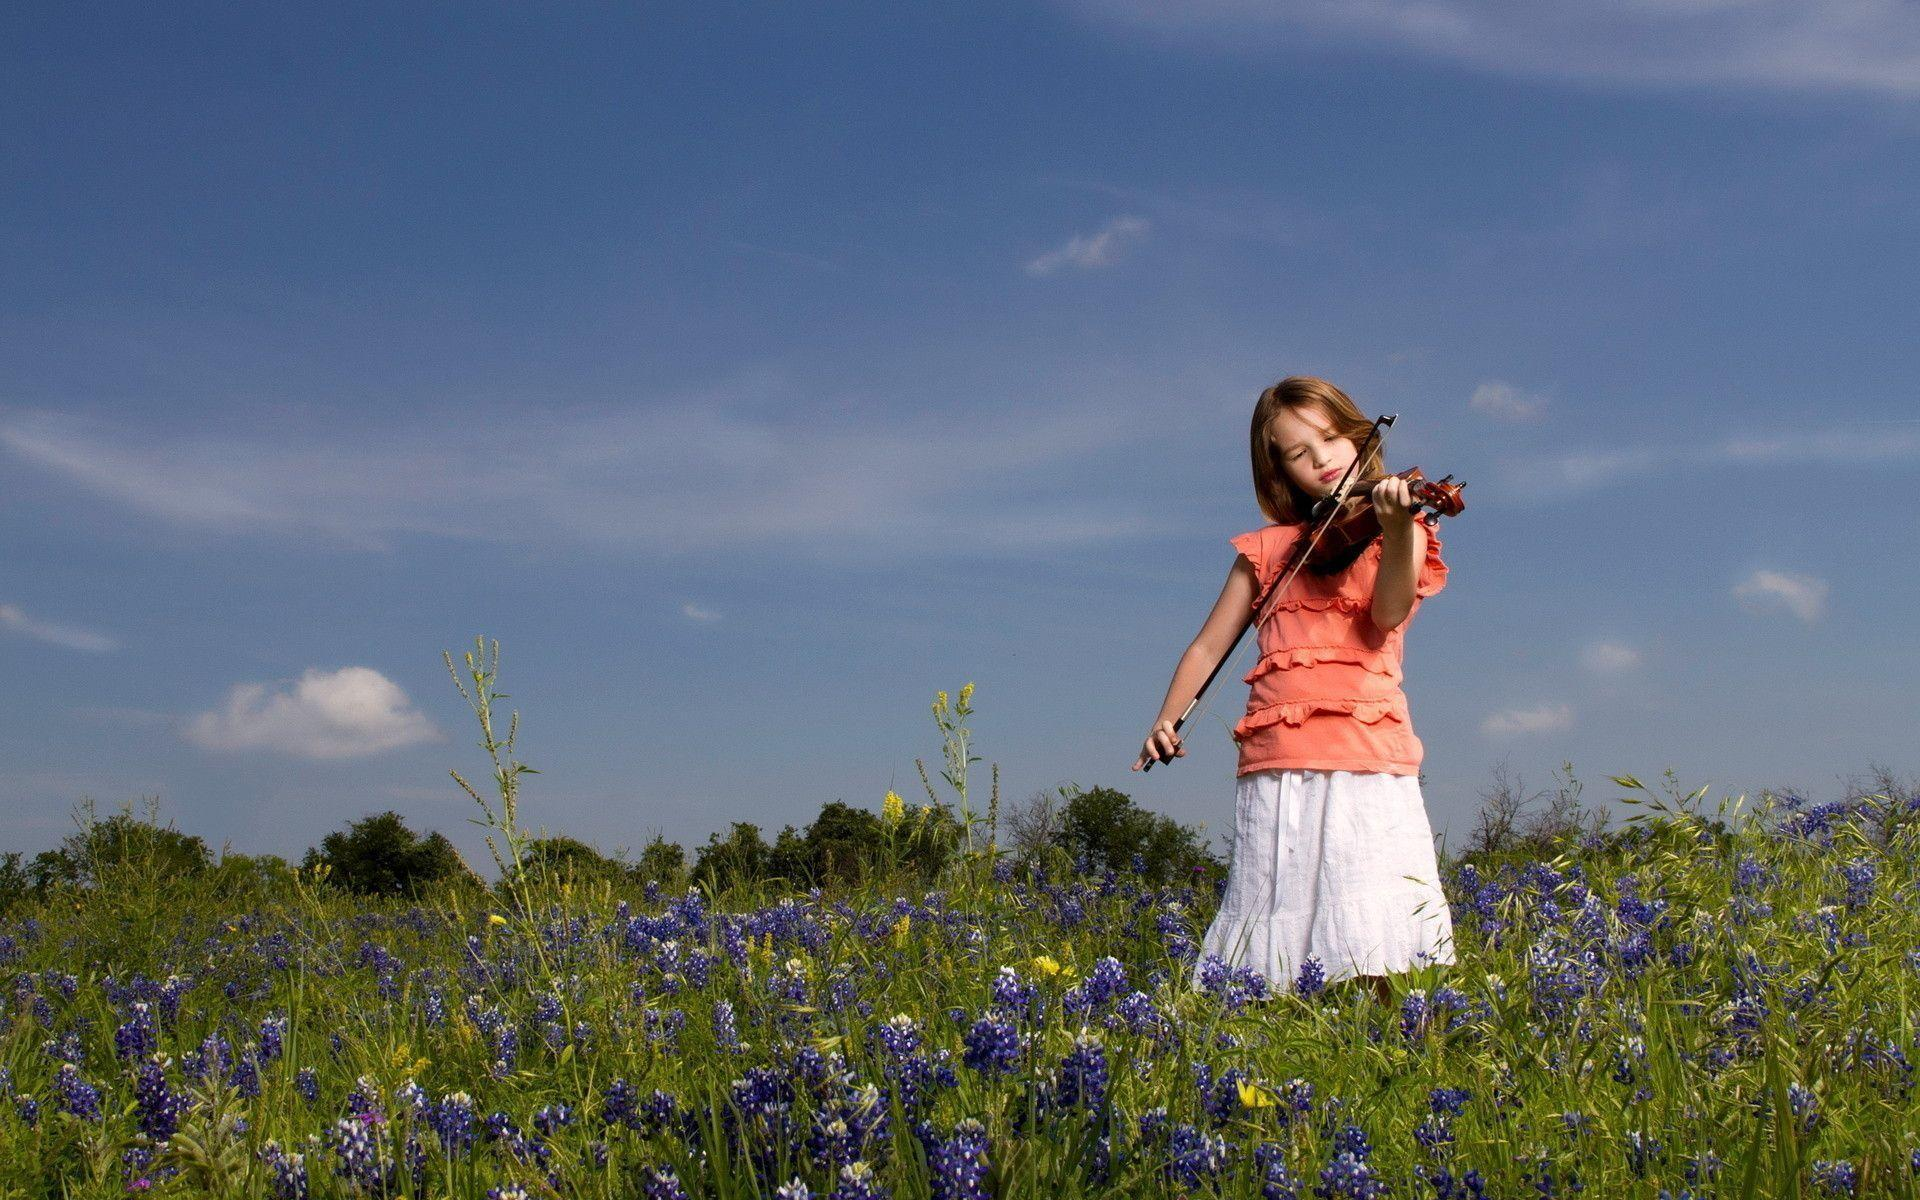 66 Violin Wallpapers   Violin Backgrounds Page 3